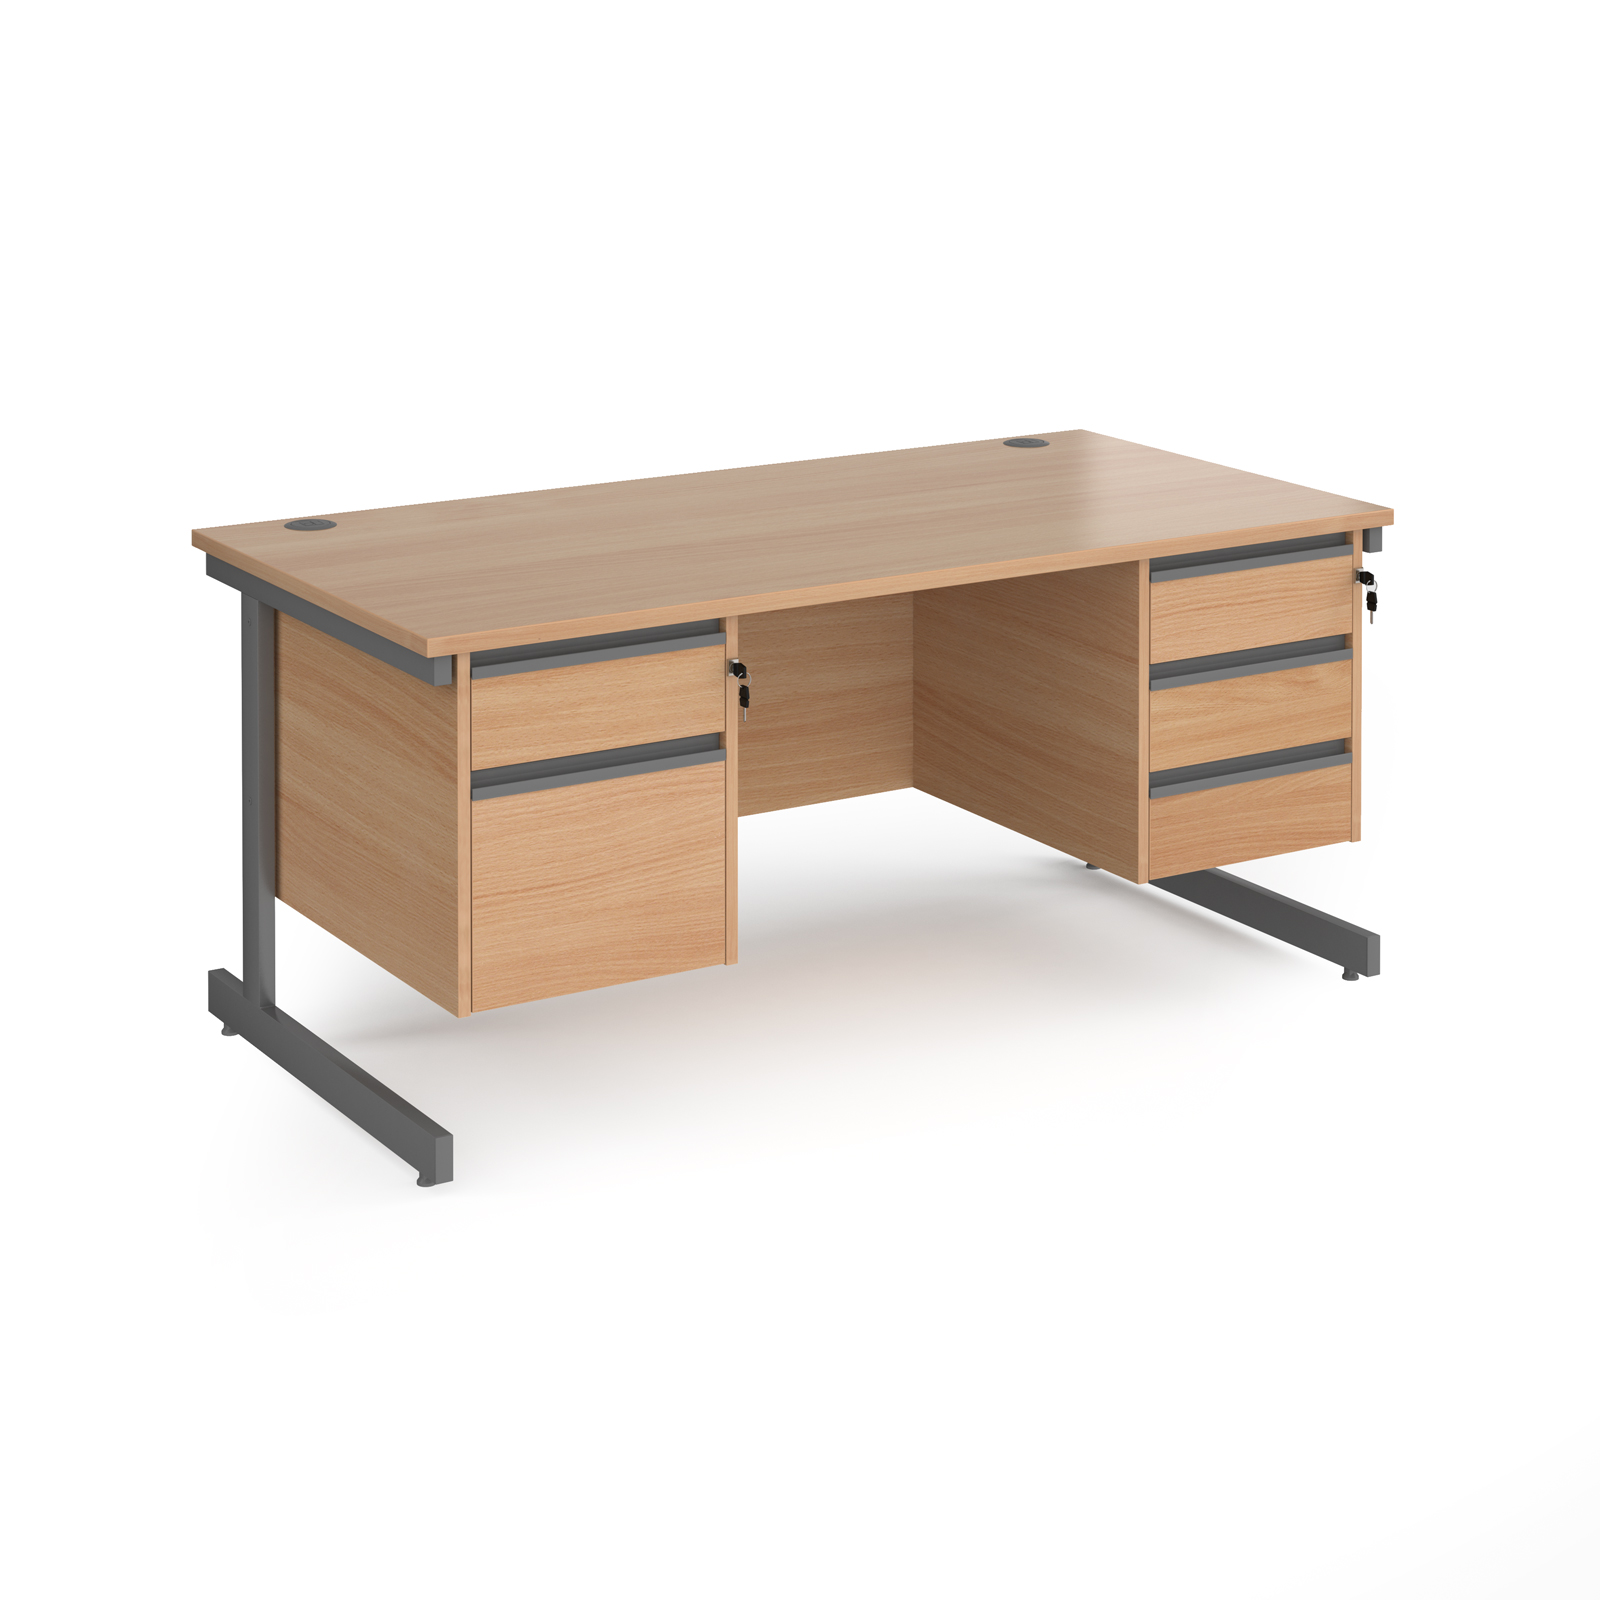 Contract 25 cantilever leg straight desk with 2 and 3 drawer peds